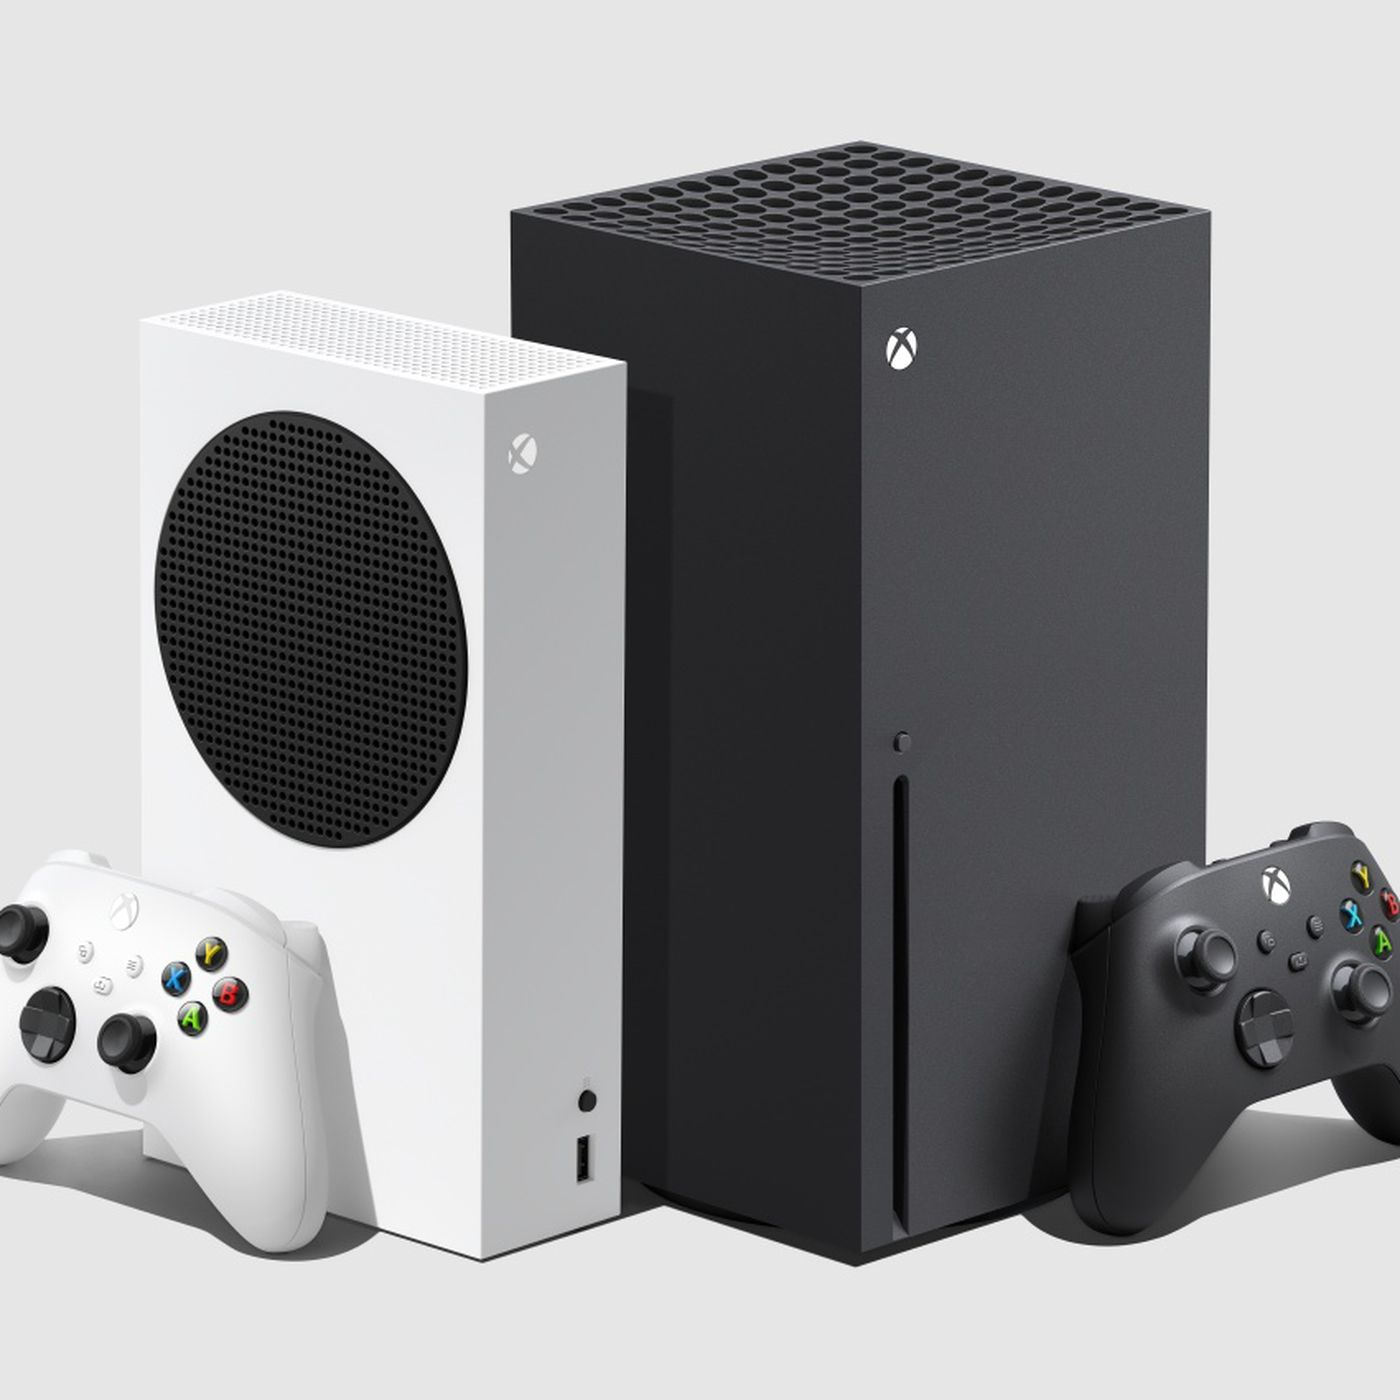 Your Move Ps5 What Microsoft S Xbox Moves Suggest Sony Might Do The Verge